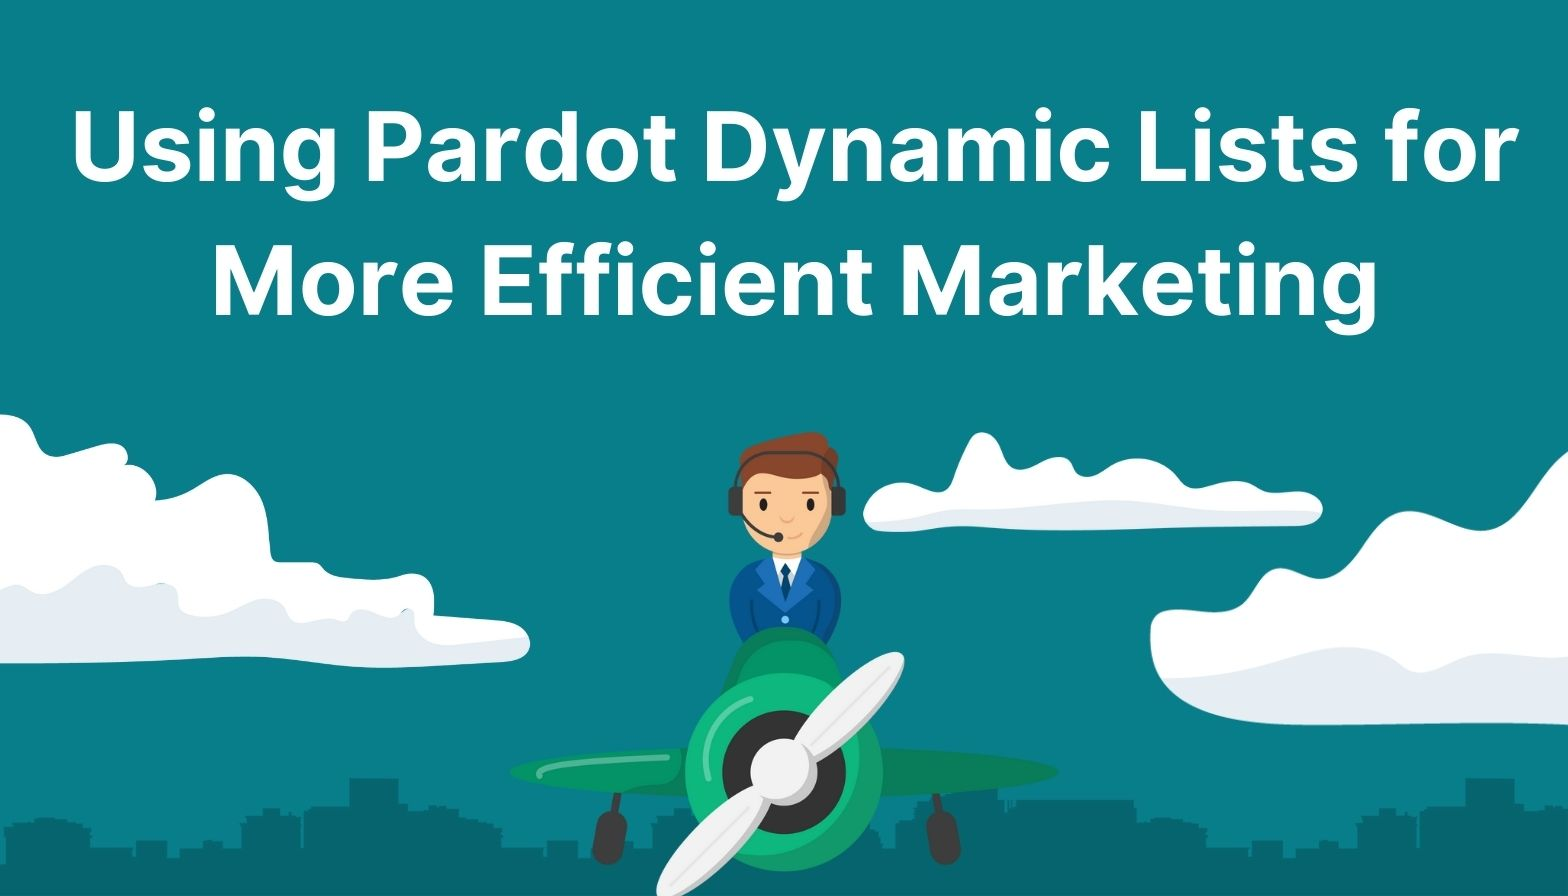 Feature image: Using Pardot dynamic lists for more efficient marketing